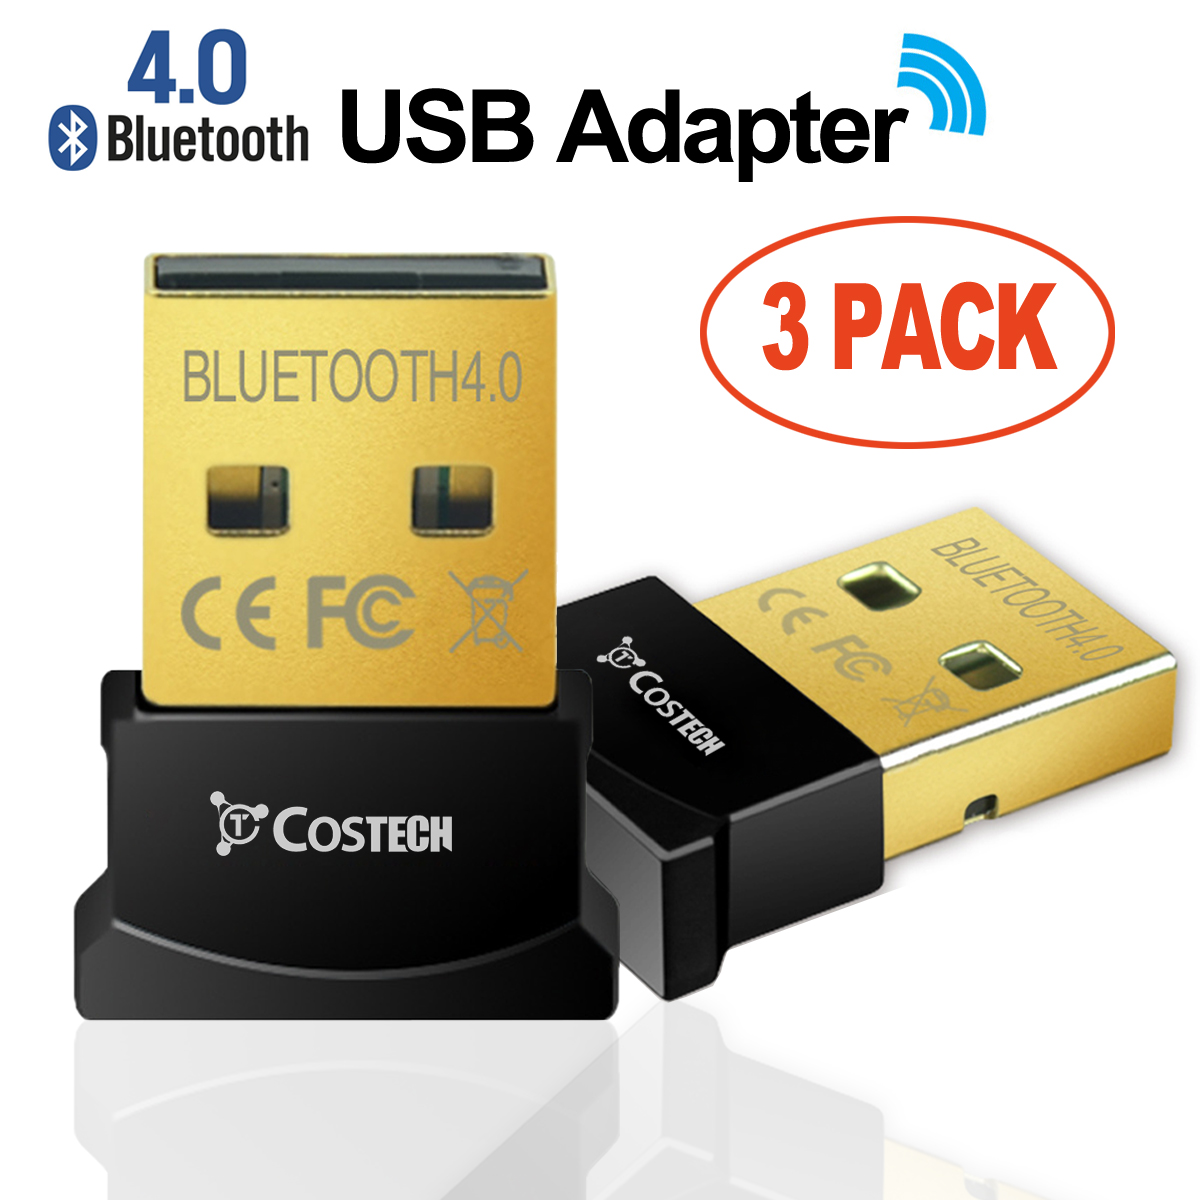 Costech Bluetooth 4.0 USB Adapter Gold Plated Micro Dongle 33ft/10m Compatible with Windows 10,8.1/8,7,Vista, XP, 32/64 Bit for Desktop , Laptop, computers (3 Pack)